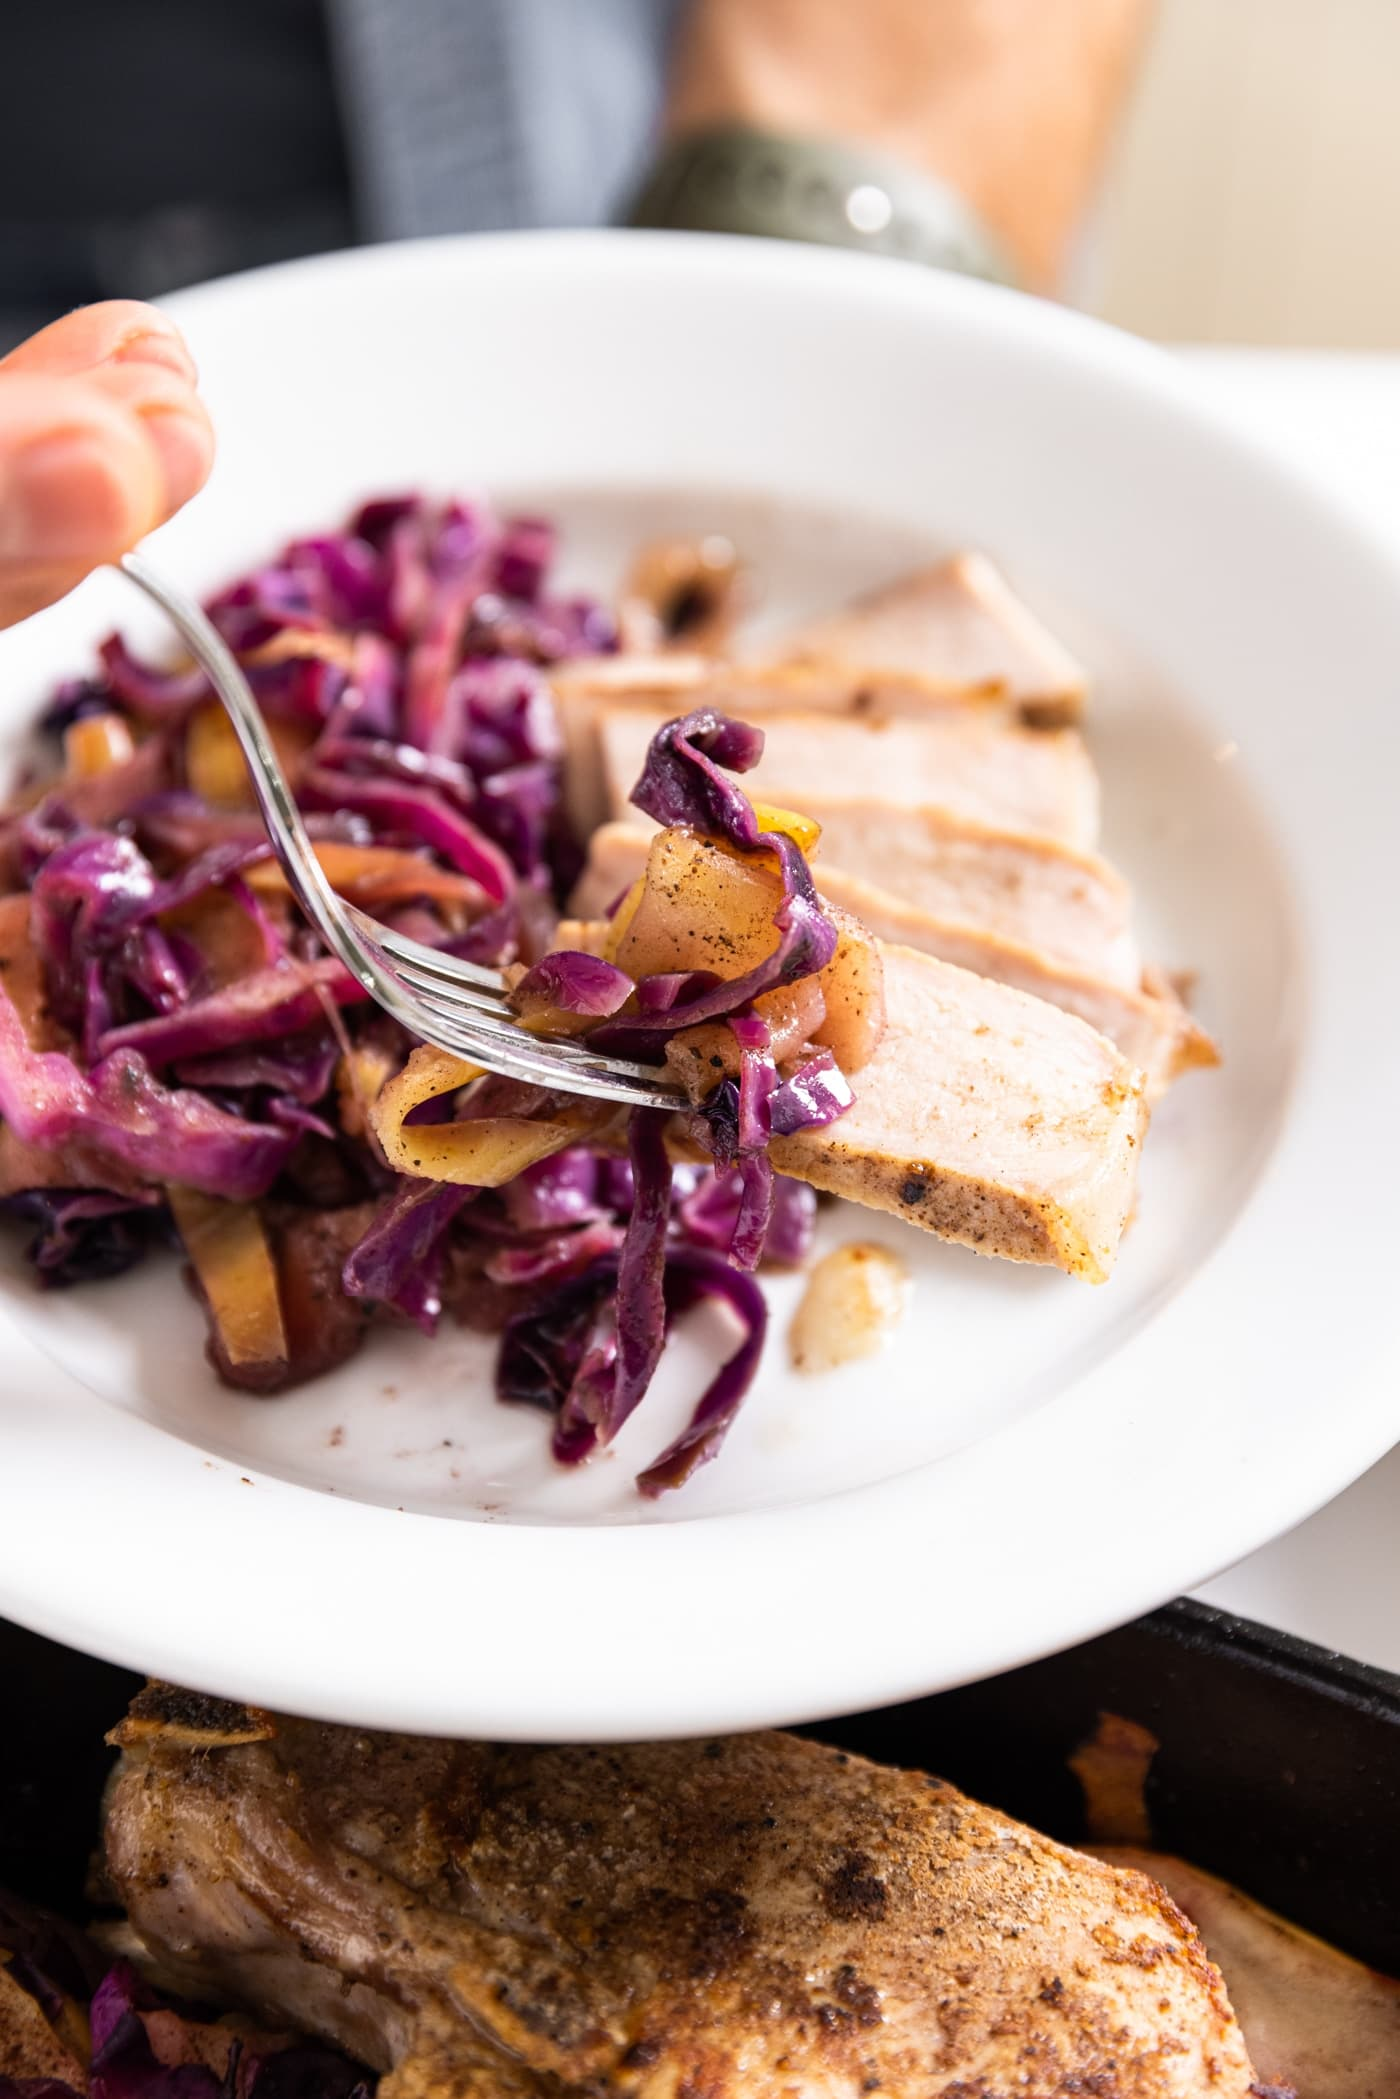 White plate filled slices of pork and a combination of red cabbage and apples with fork holding bite full